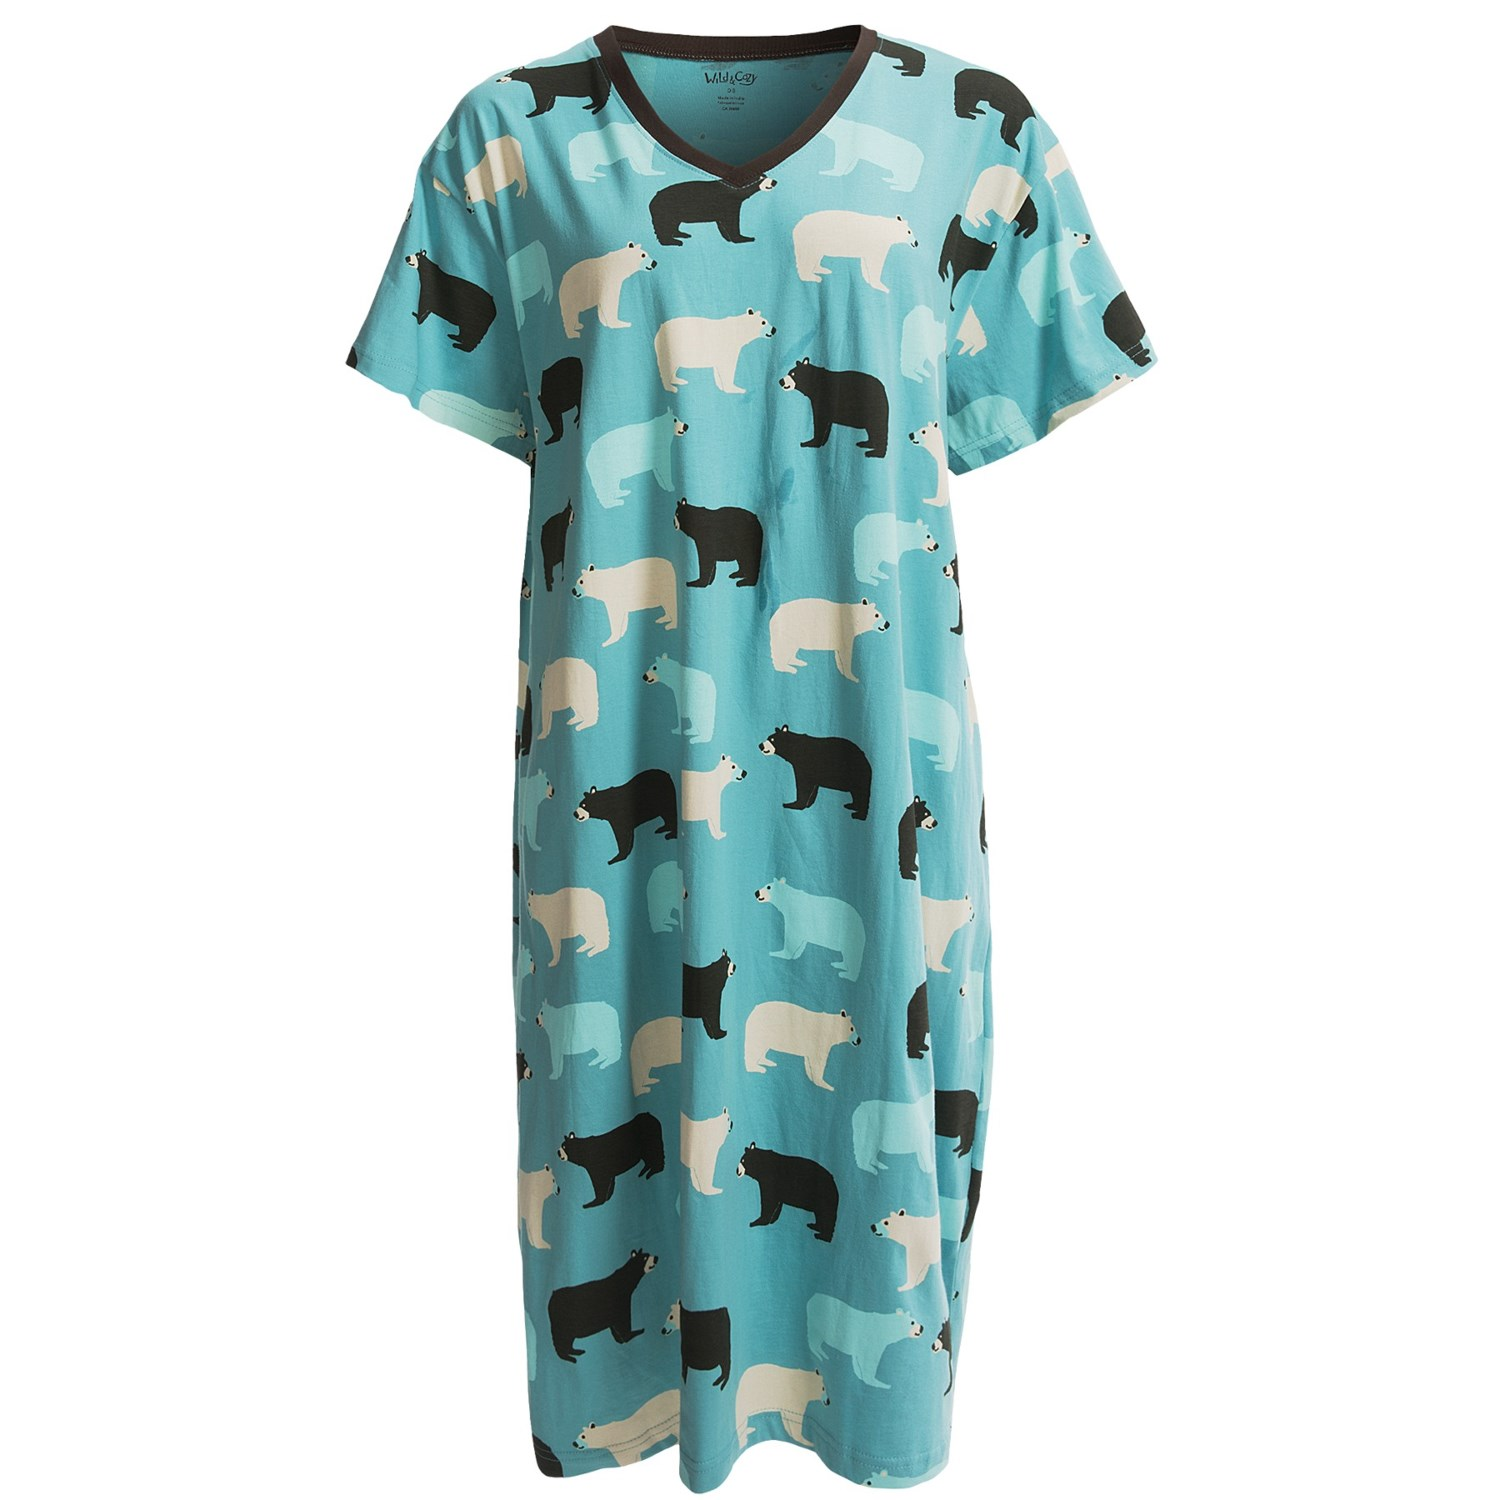 Wild cozy by hatley cotton jersey sleep shirt short for Sleep shirt short sleeve